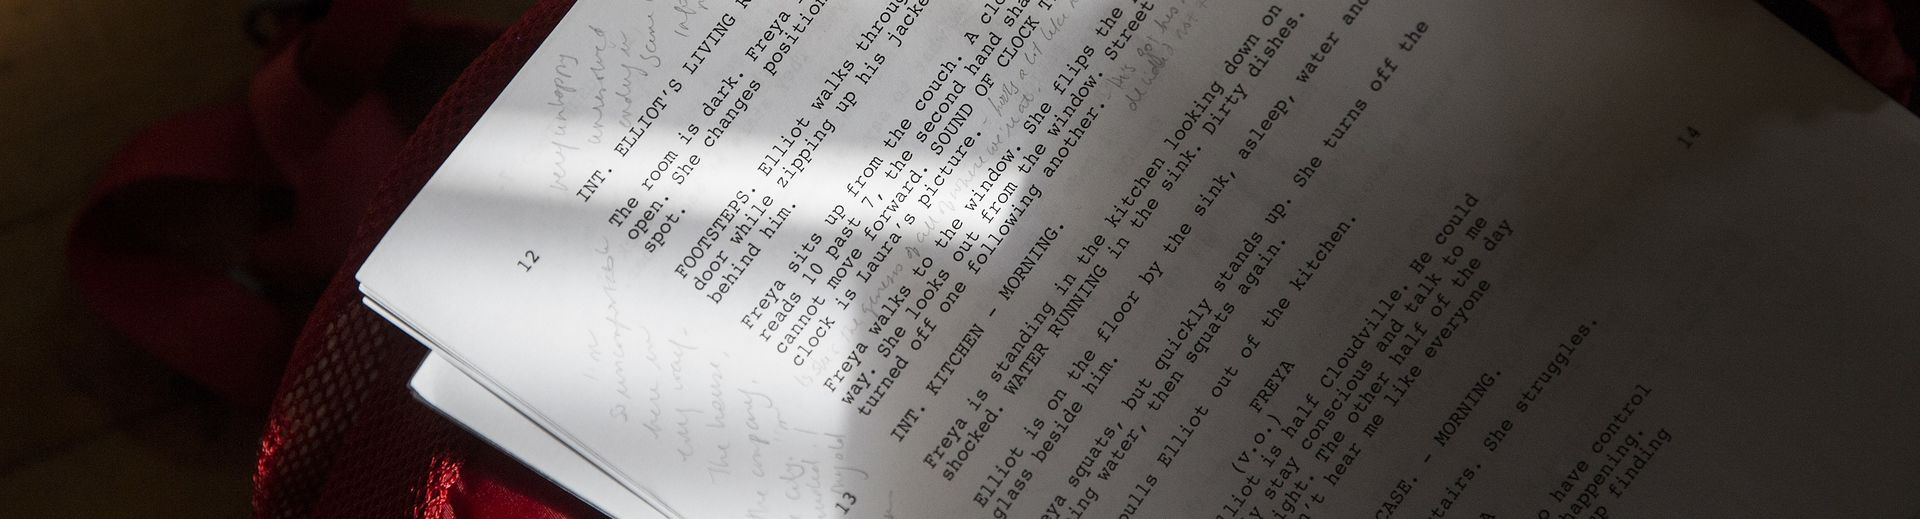 Person holding a printed theater script with handwritten notes on it.